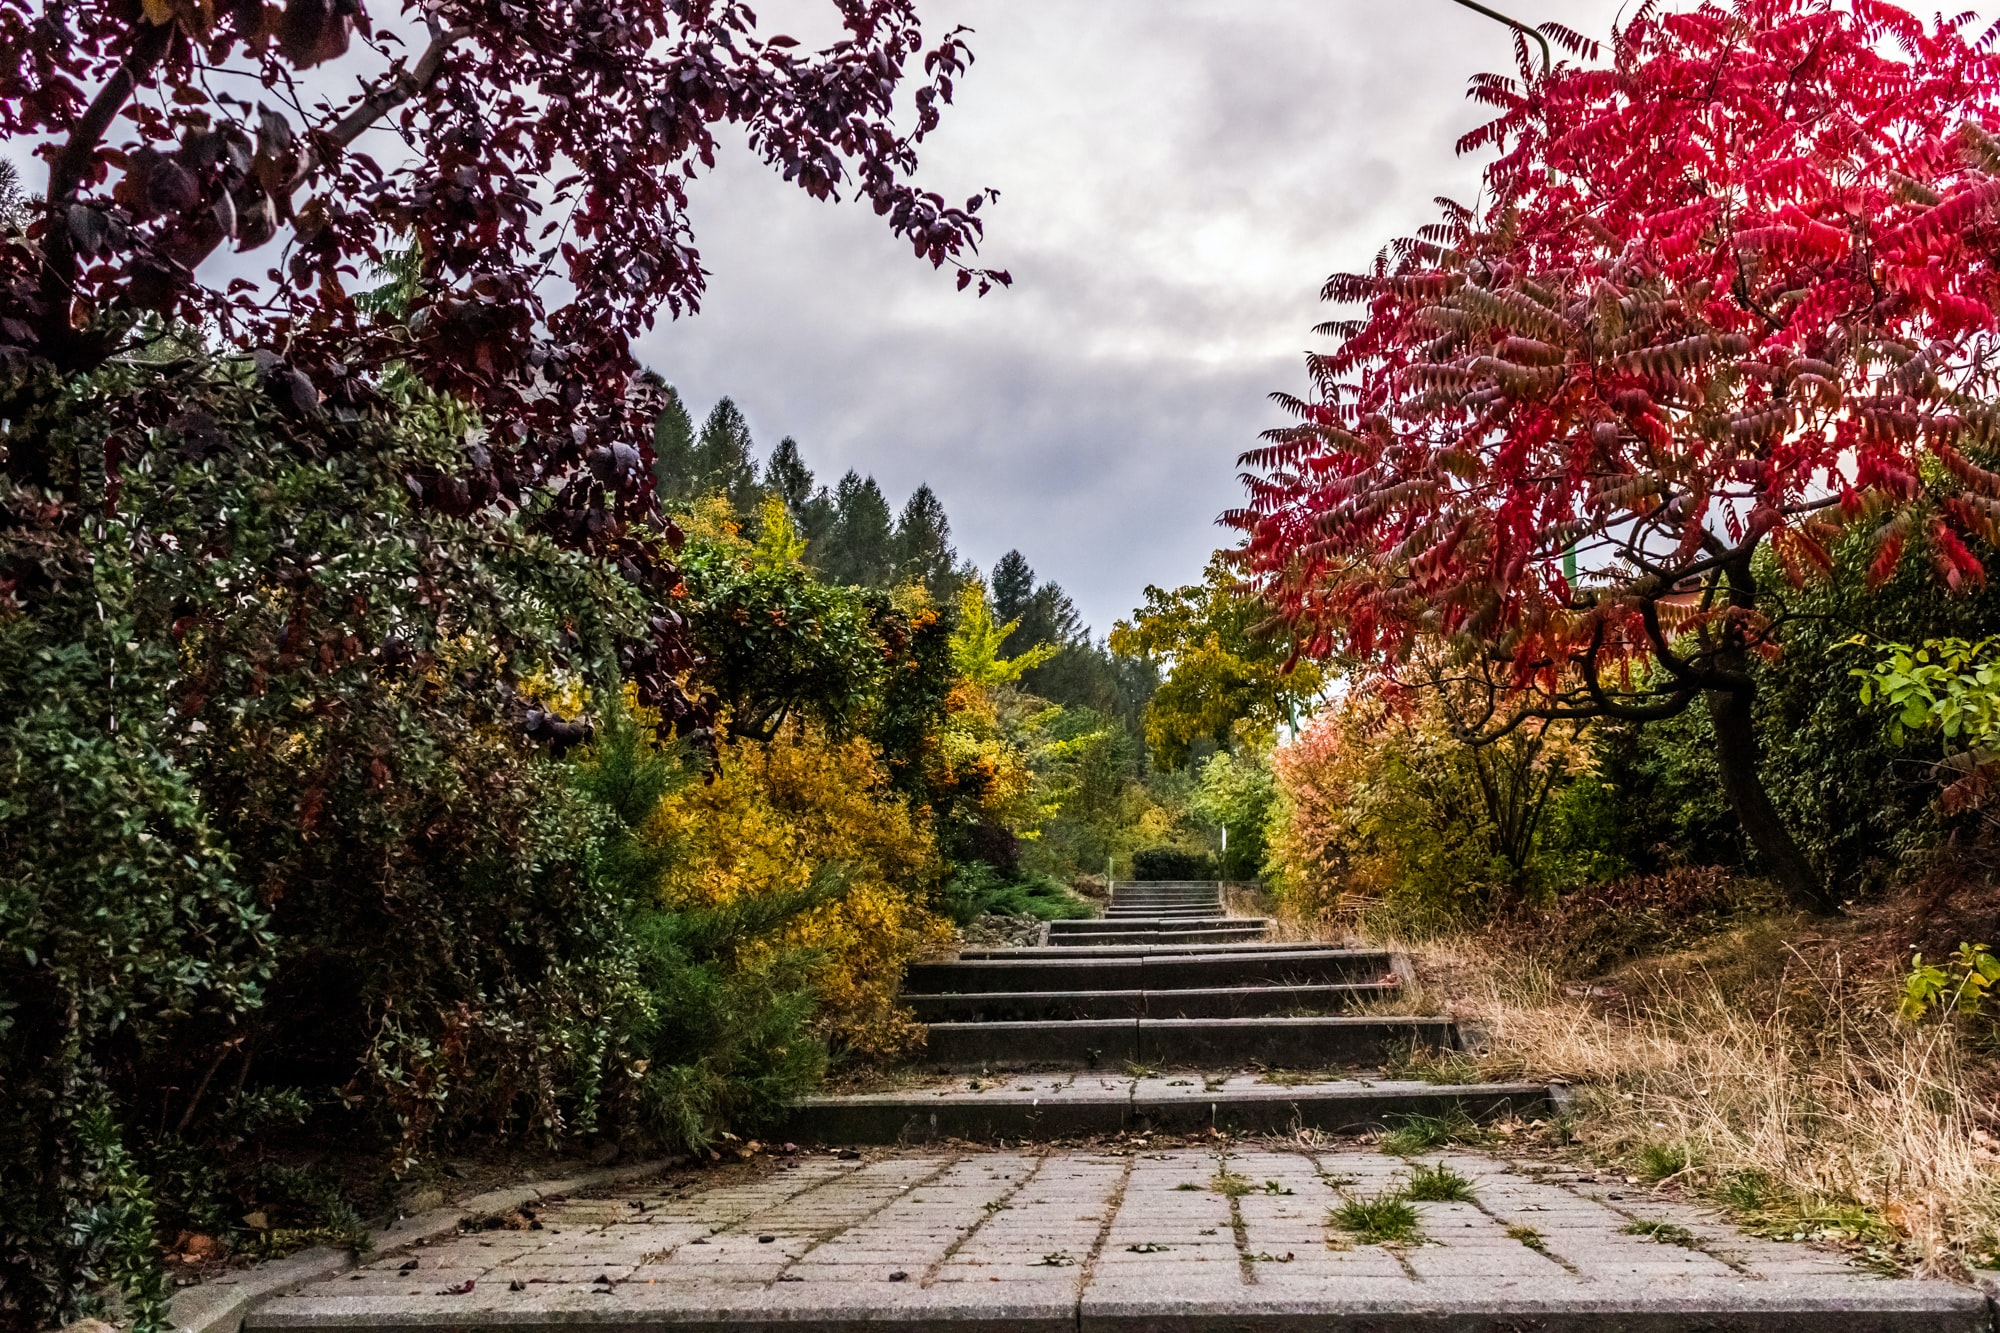 A gradual stairway path in Bielawa covered with trees and colorful foliage